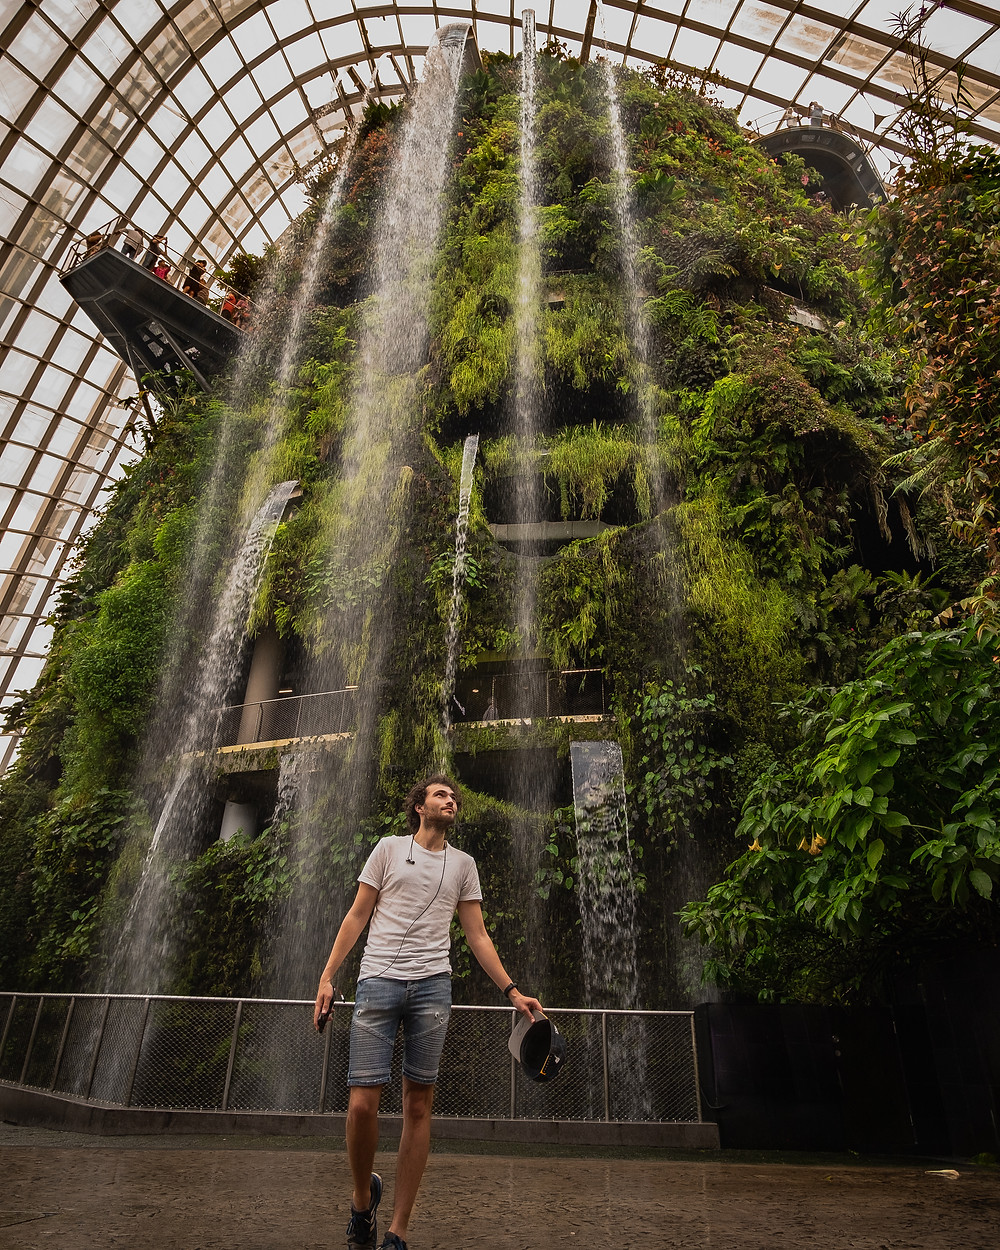 Instagrammable Singapore - Gardens by the Bay